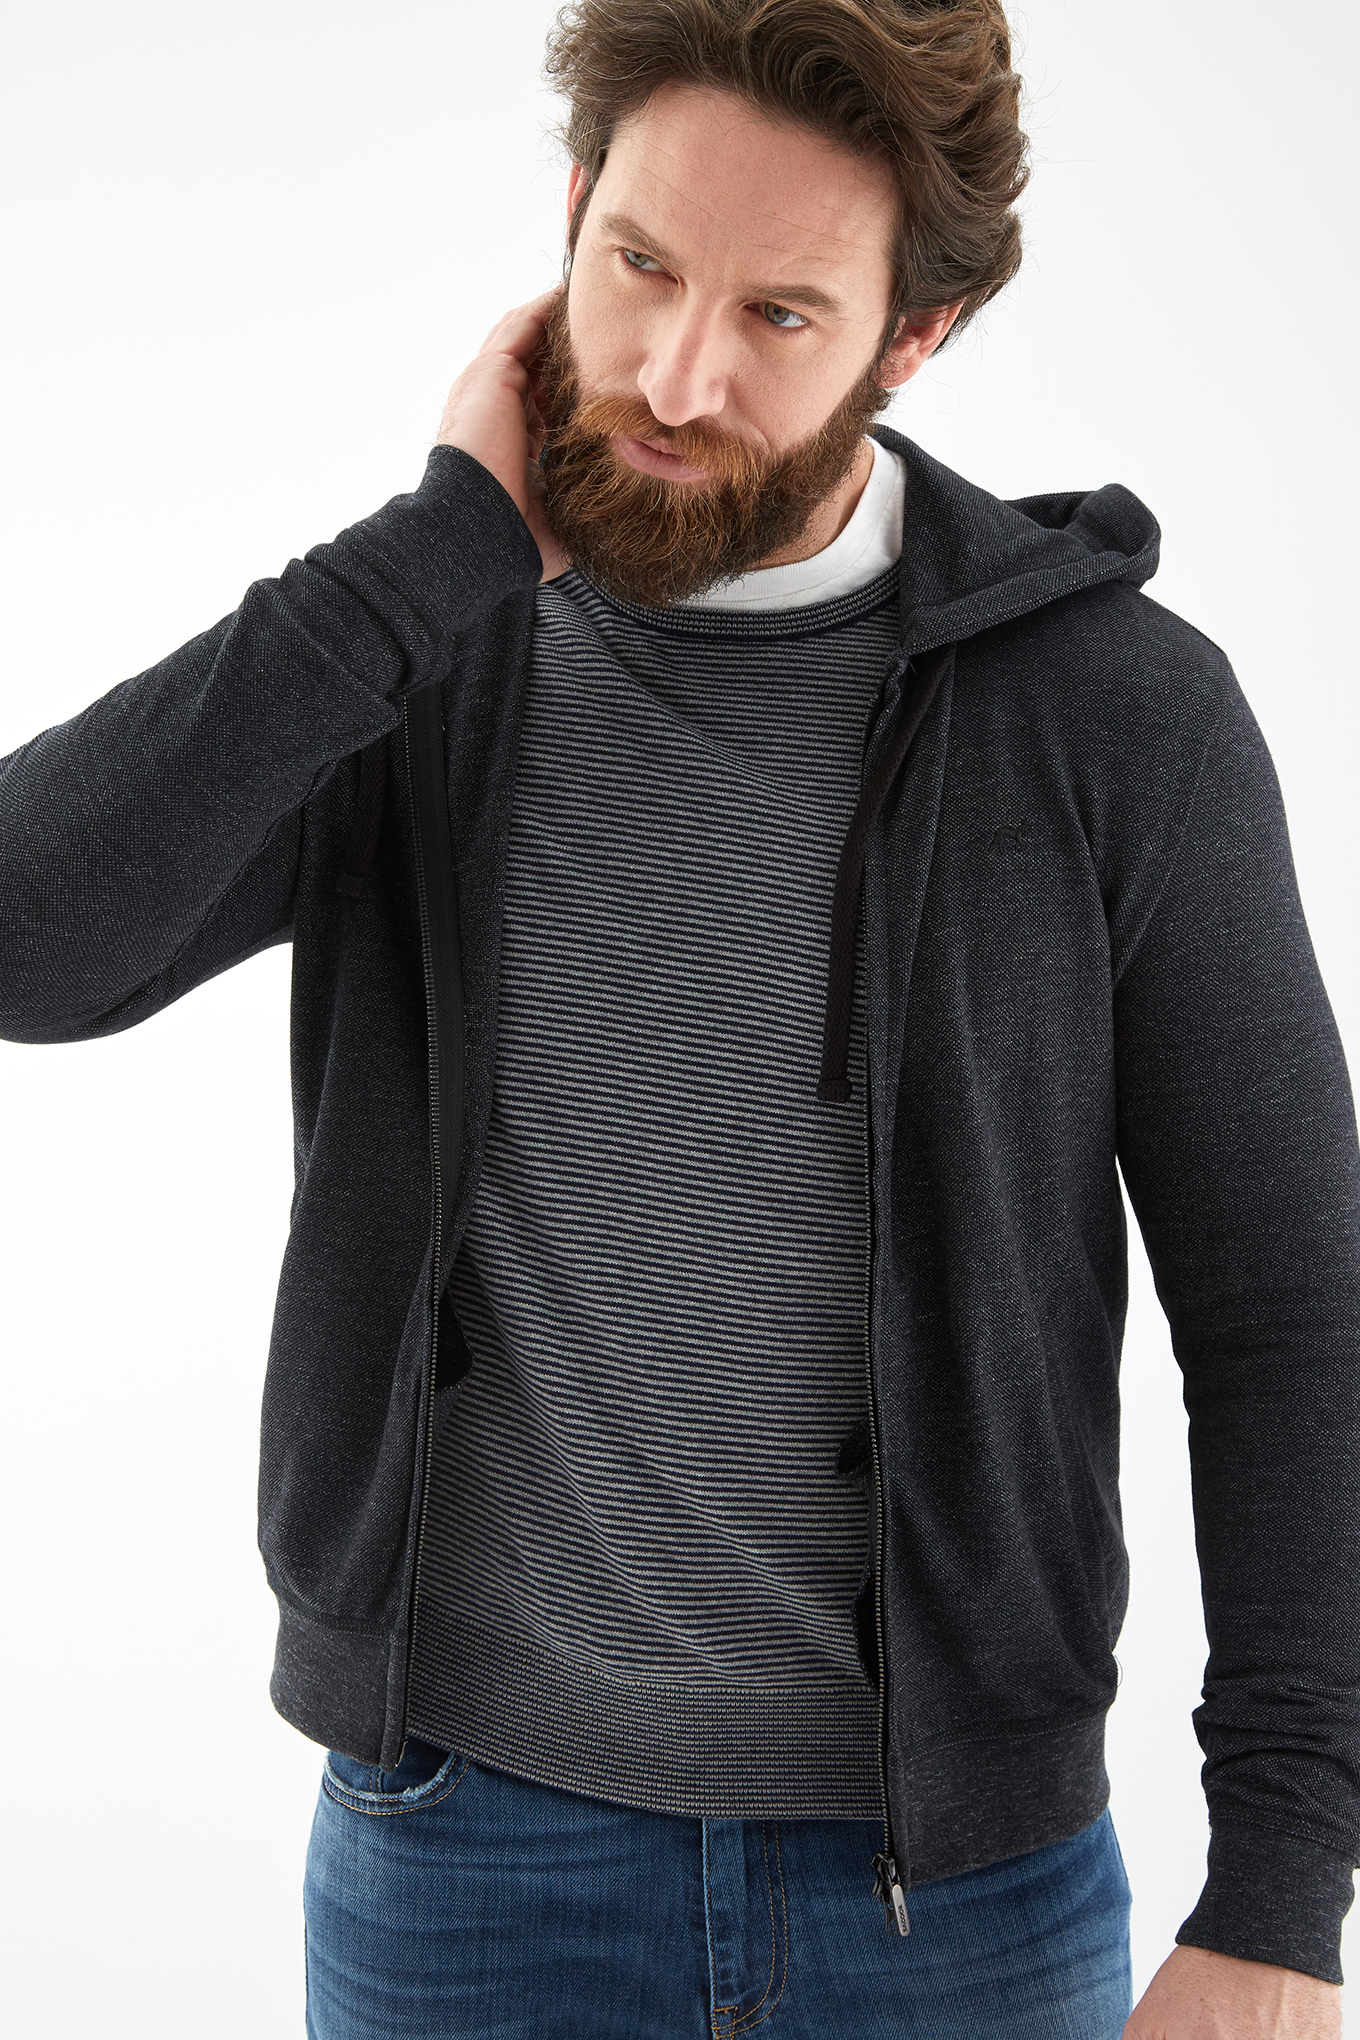 Sweatshirt Black Sport Man